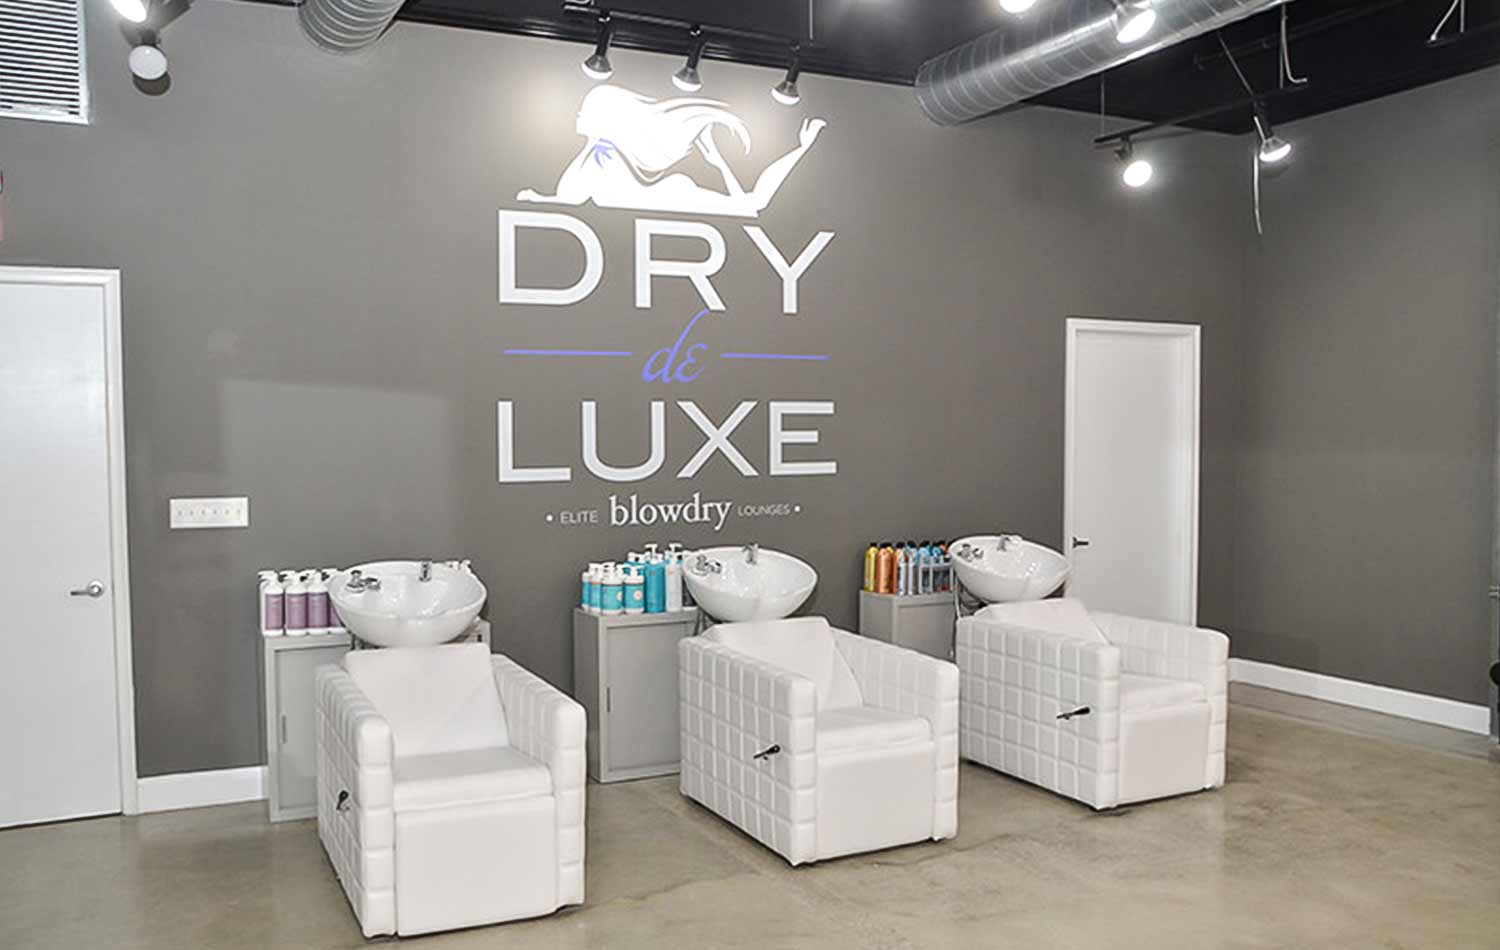 Dry de Luxe alternative product image 2